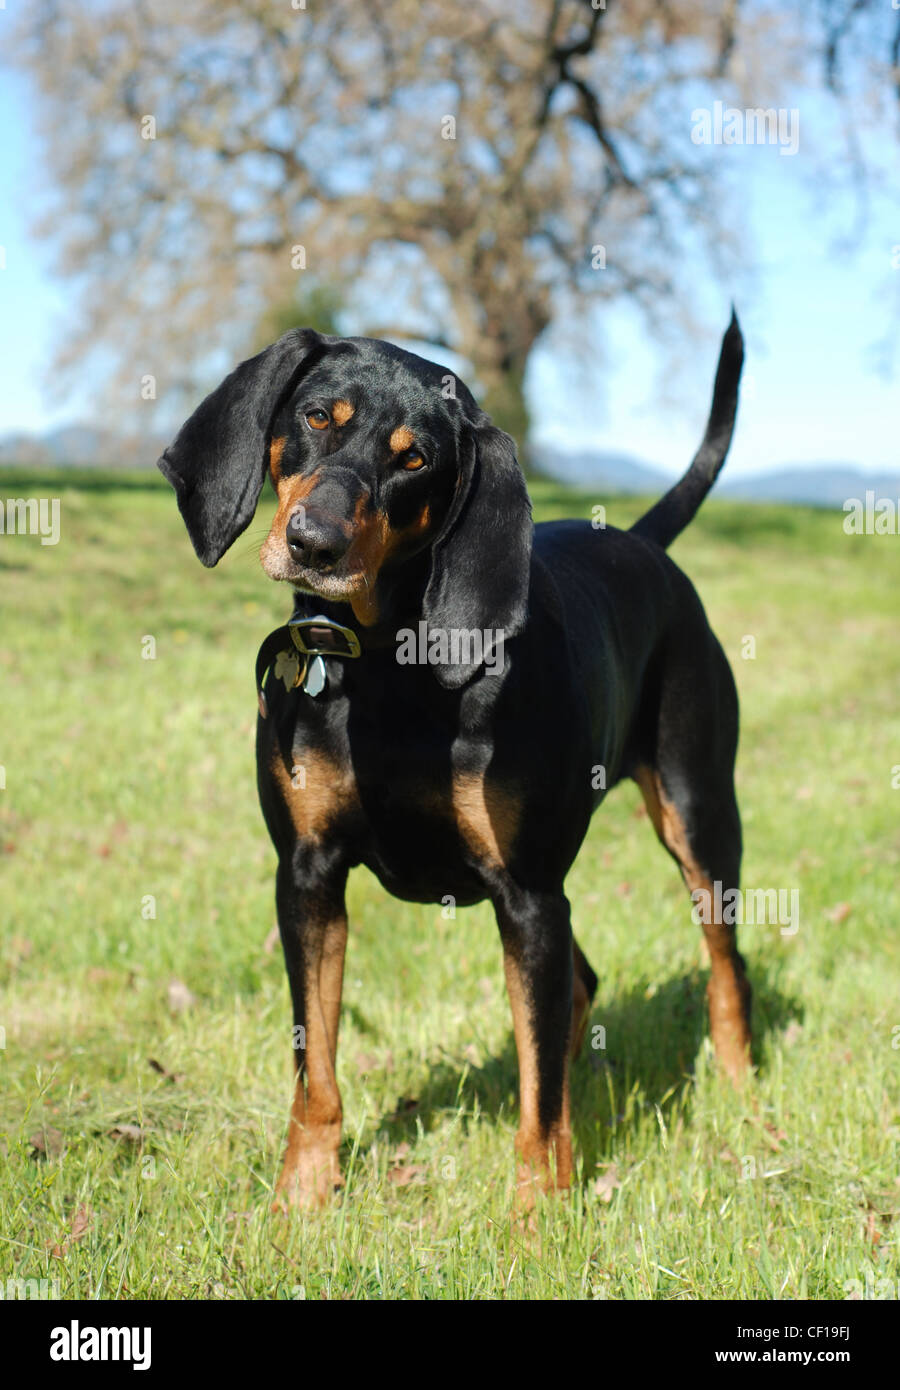 Black and Tan Coonhound portrait, outdoor, full body. - Stock Image